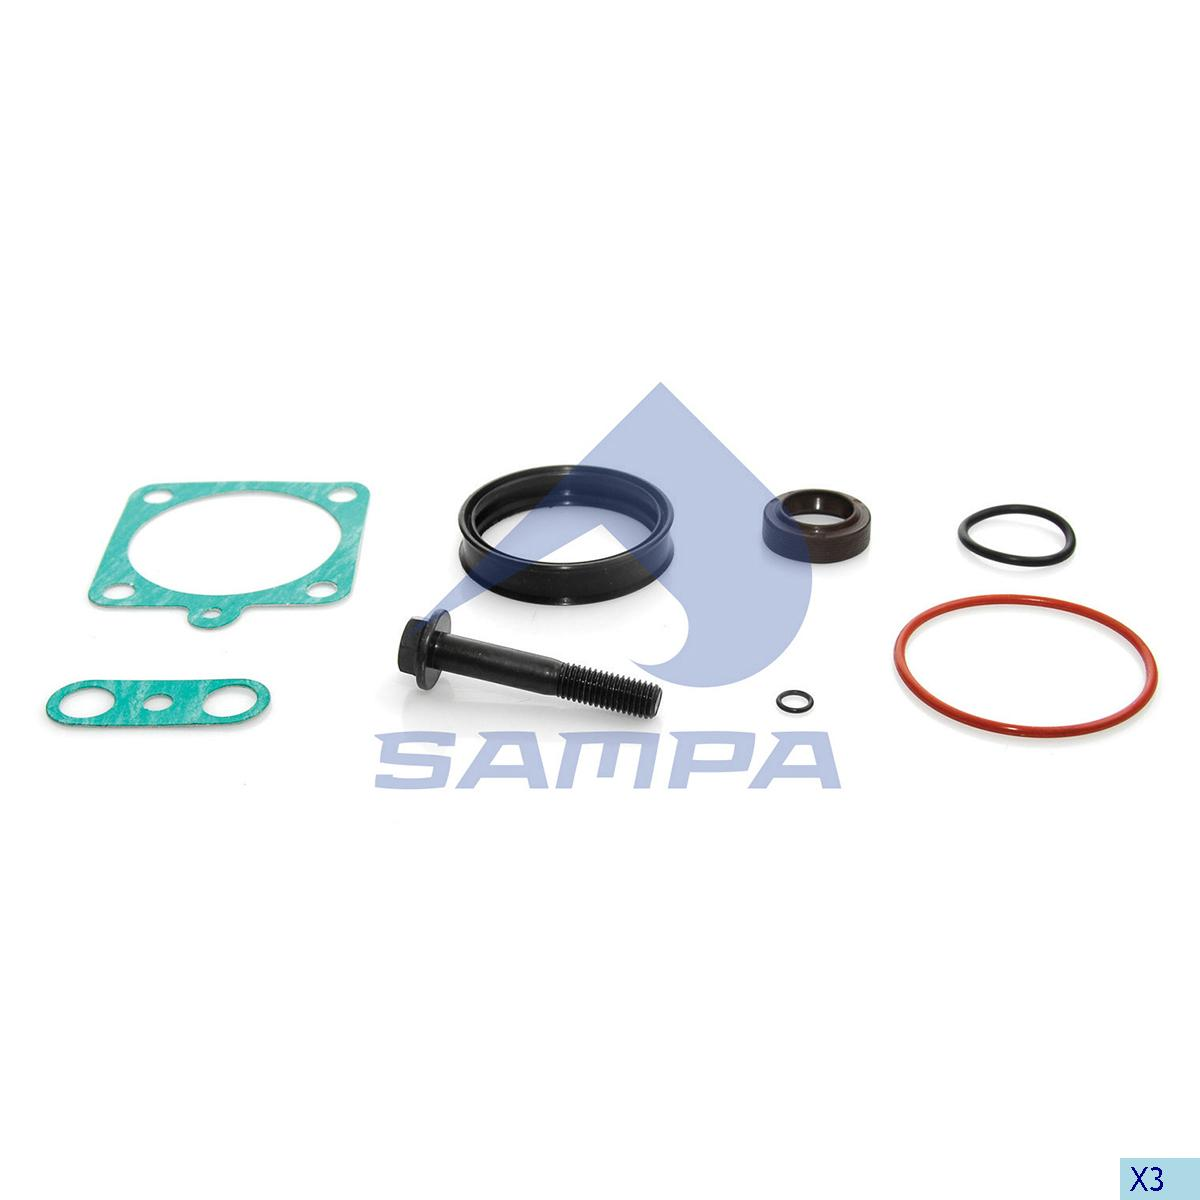 Repair Kit, Gear Shifting, Volvo, Gear Box